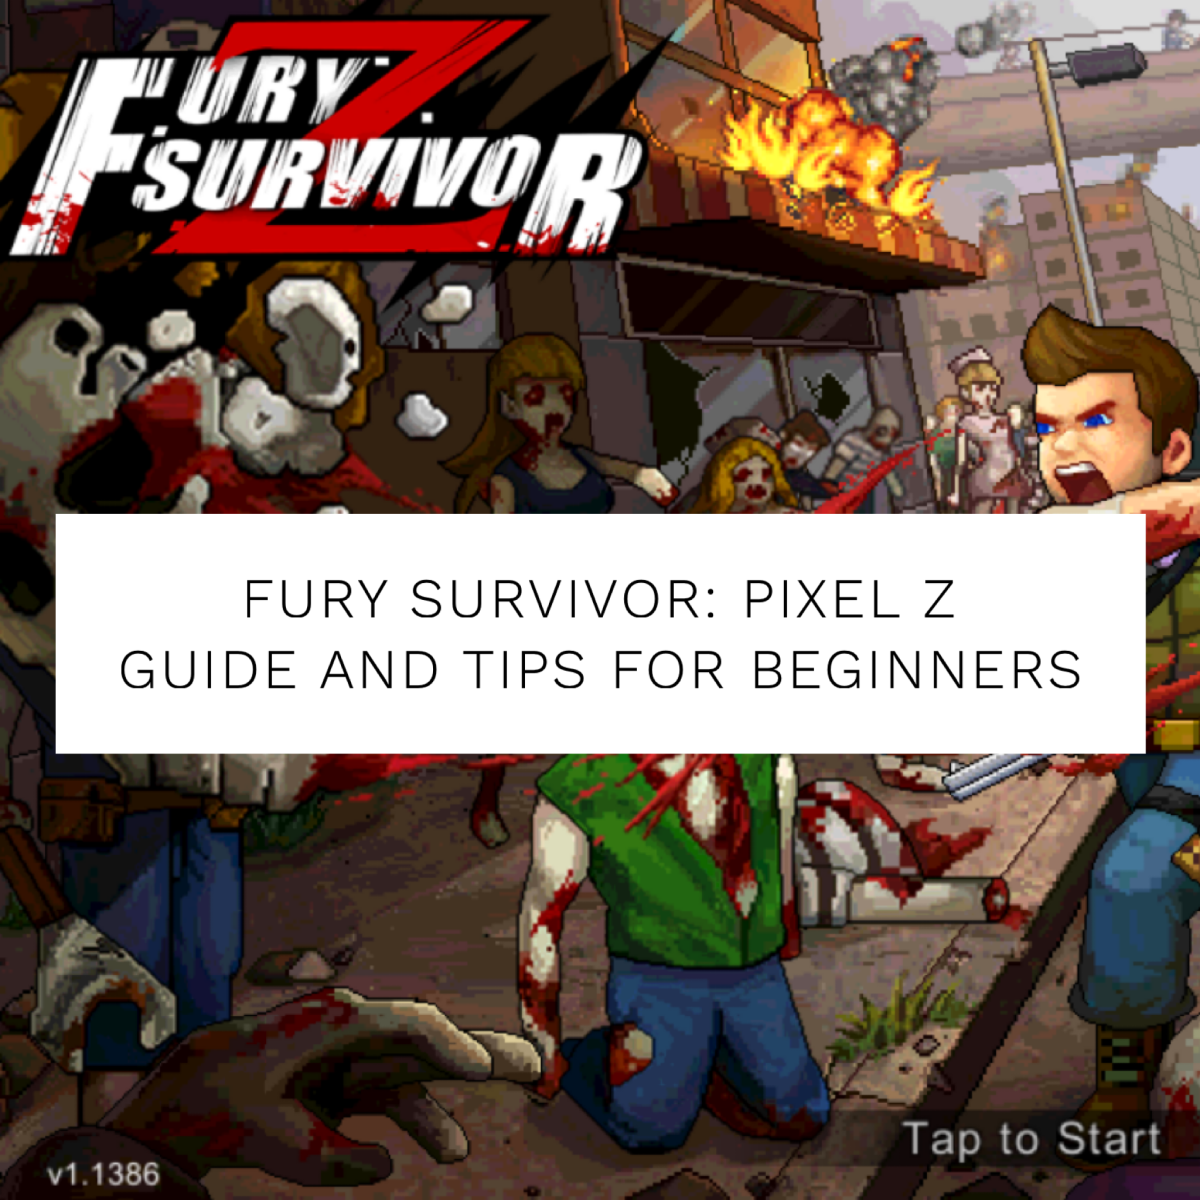 """How to Play """"Fury Survivor: Pixel Z"""": Guide and Tips for Beginners"""